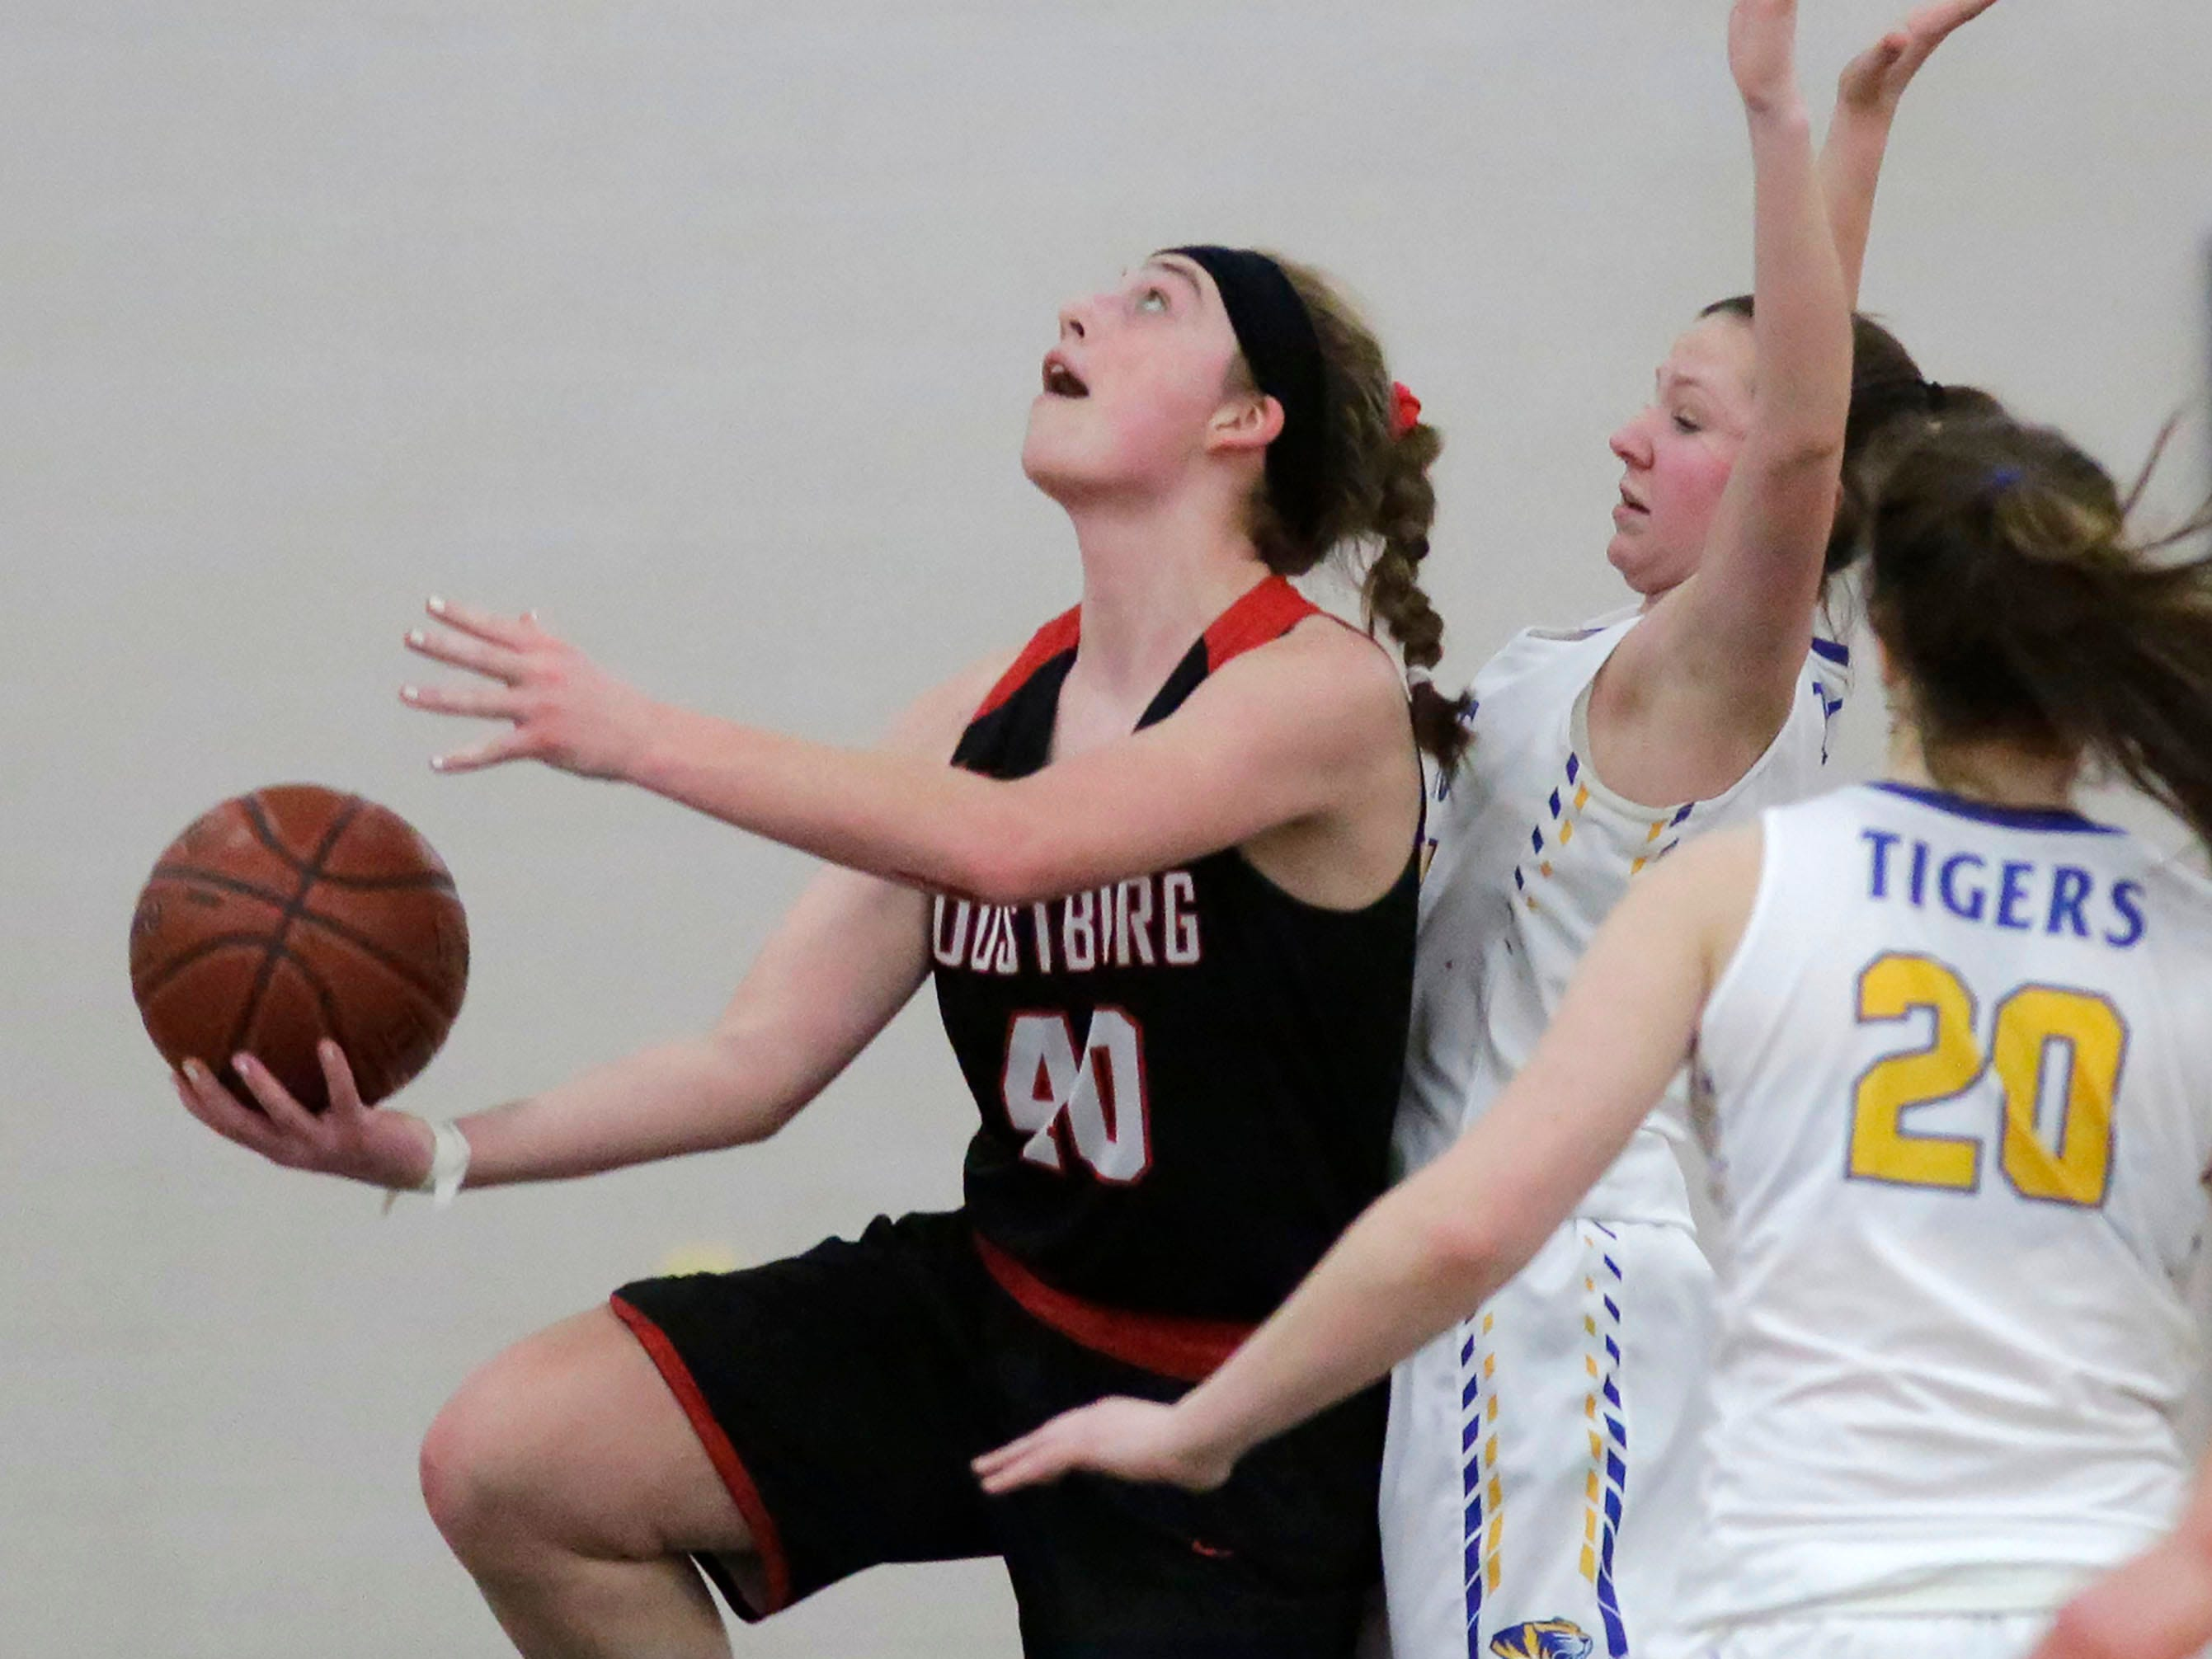 Oostburg's Ashley Ternes (40) launches an underhand shot against Howards Grove, Saturday, February 23, 2019, at Howards Grove, Wis.